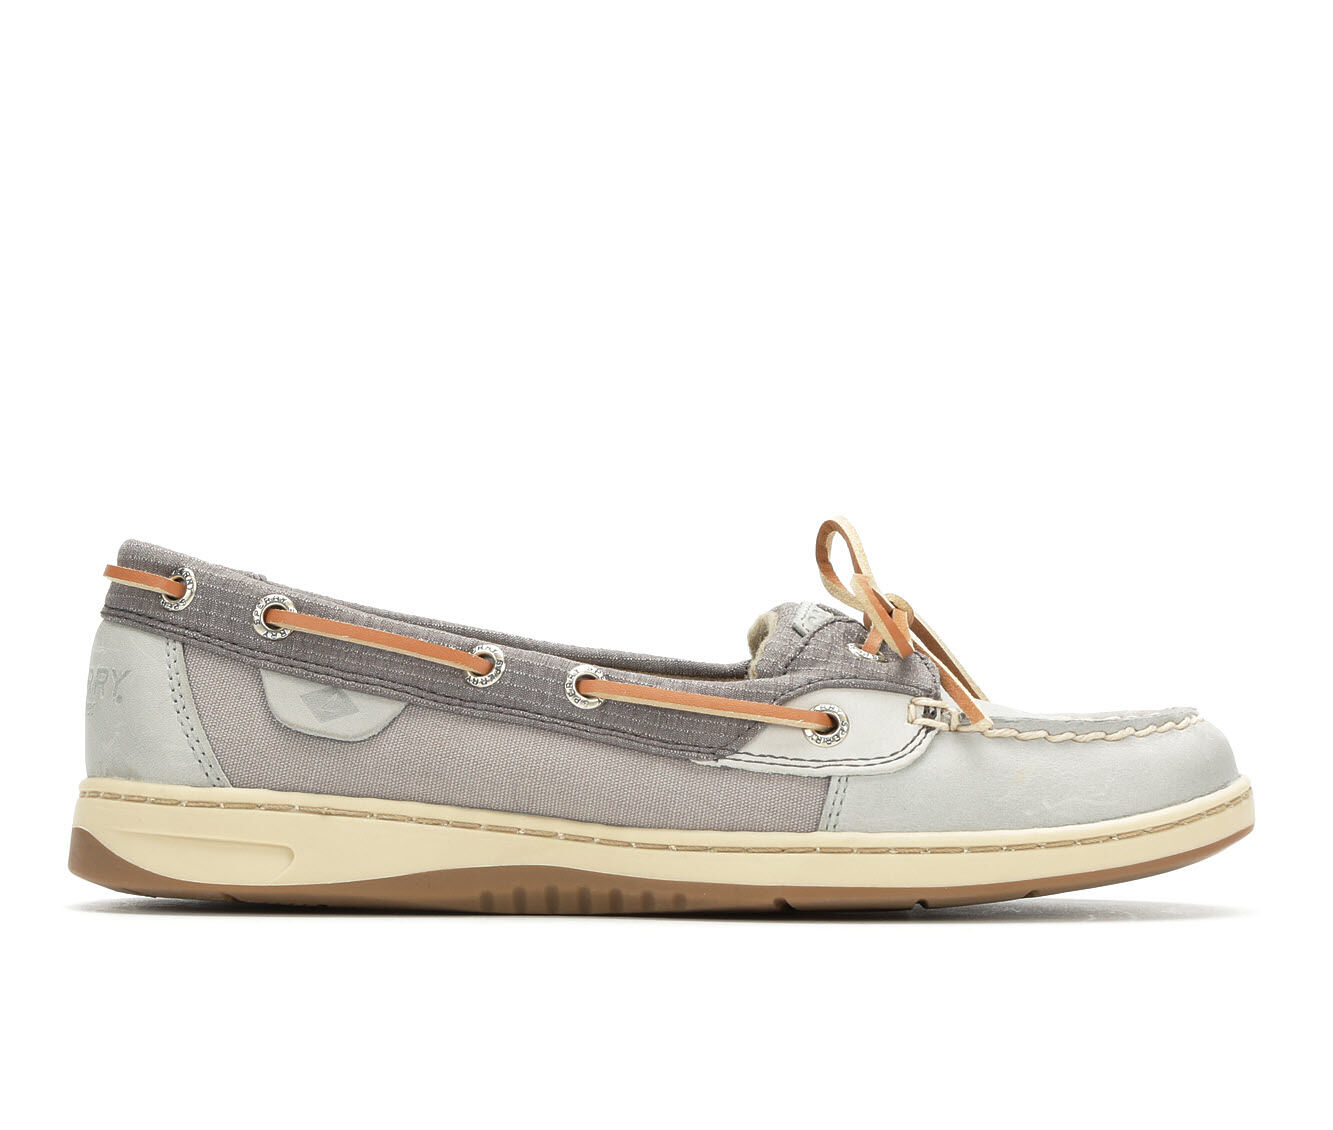 Women's Sperry Angelfish Mesh Collar Boat Shoes sale pay with visa classic online cheap low shipping fee v7yUf